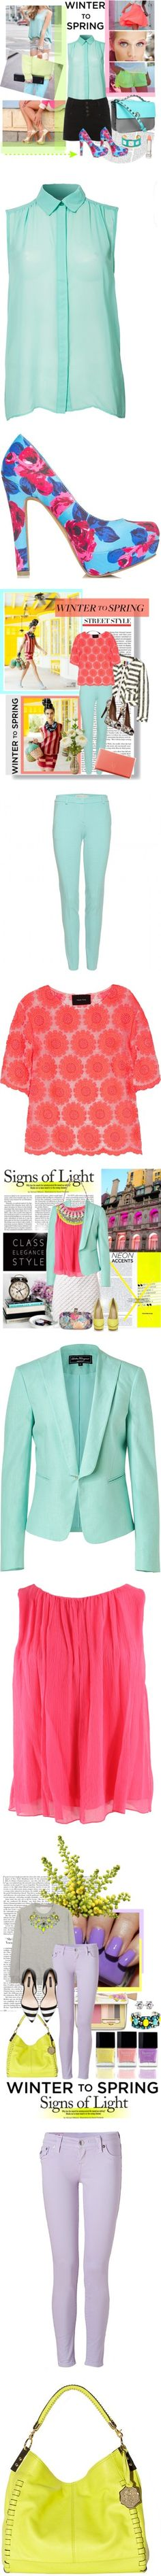 """Winter to Spring Trend: Pastels + Neon"" by polyvore-editorial on Polyvore"